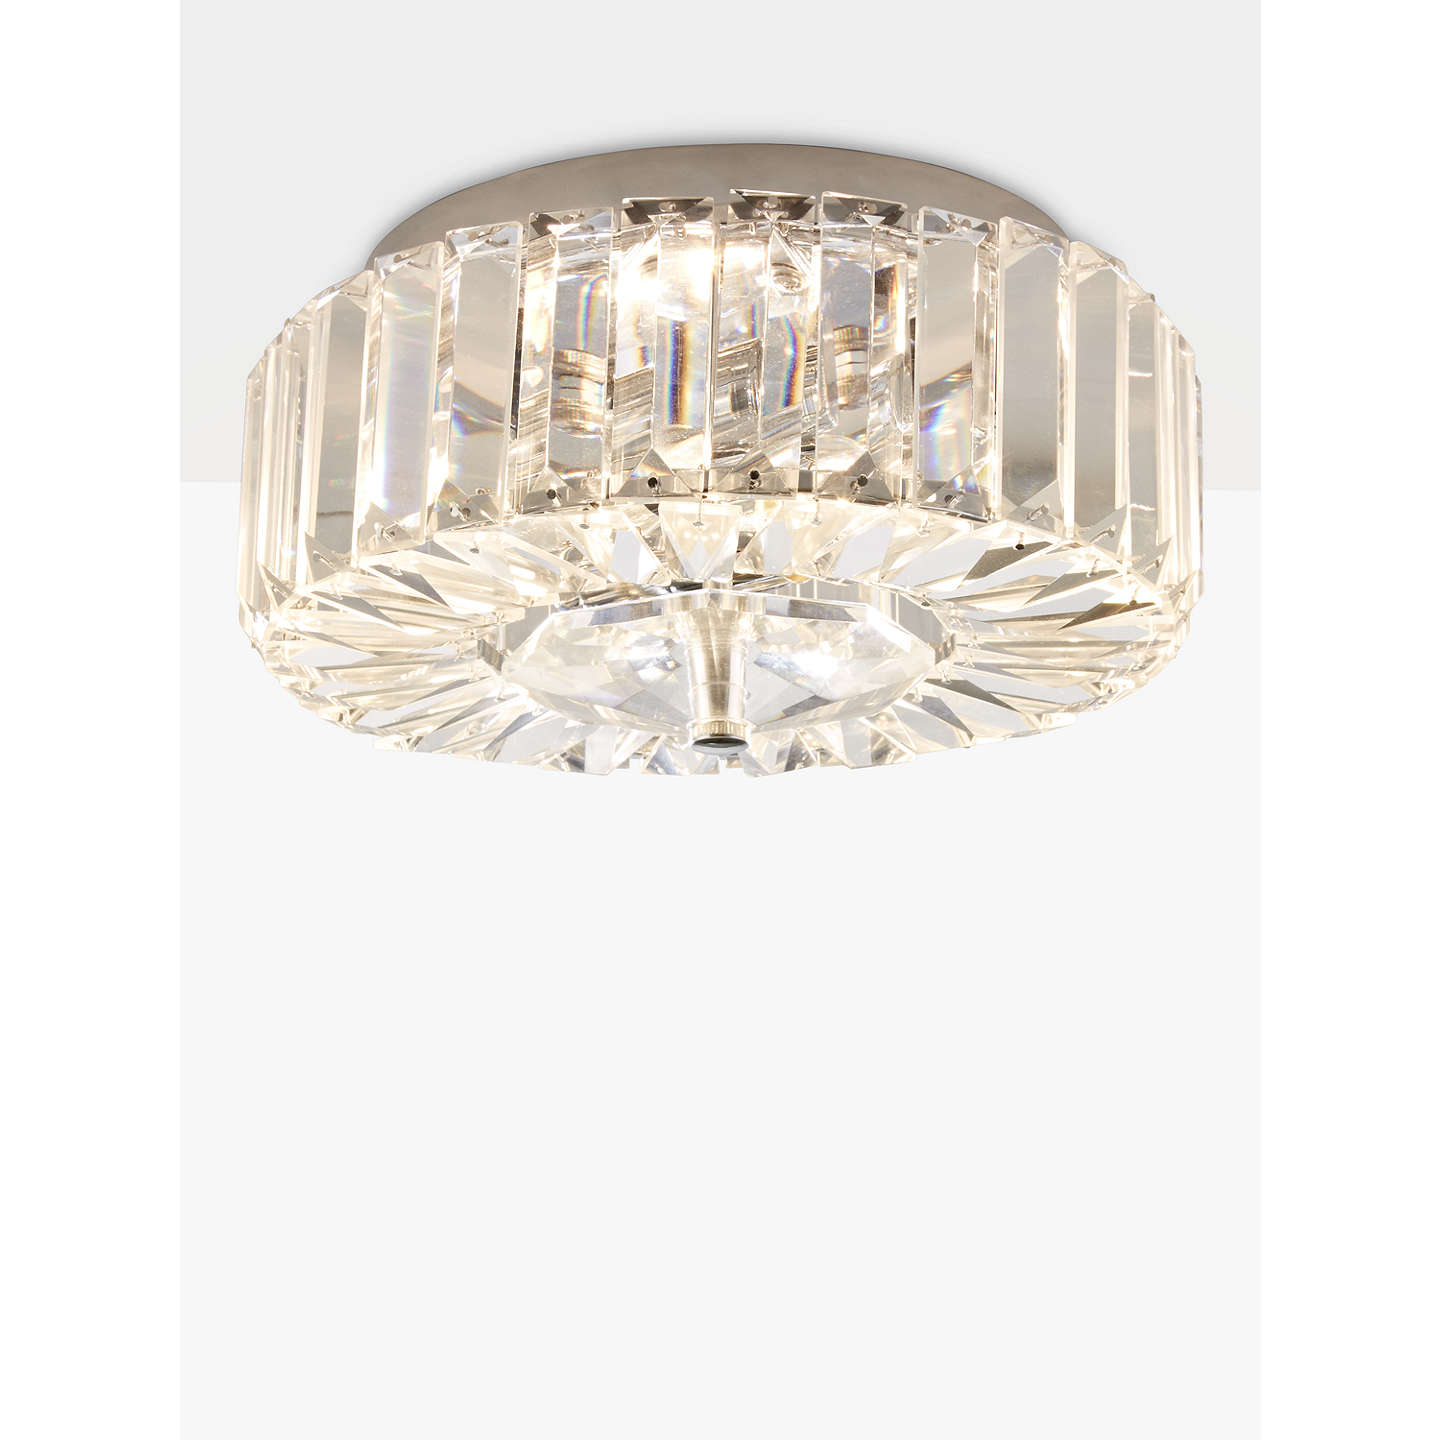 John lewis esme crystal flush ceiling light chrome at john lewis buyjohn lewis esme crystal flush ceiling light chrome online at johnlewis aloadofball Choice Image